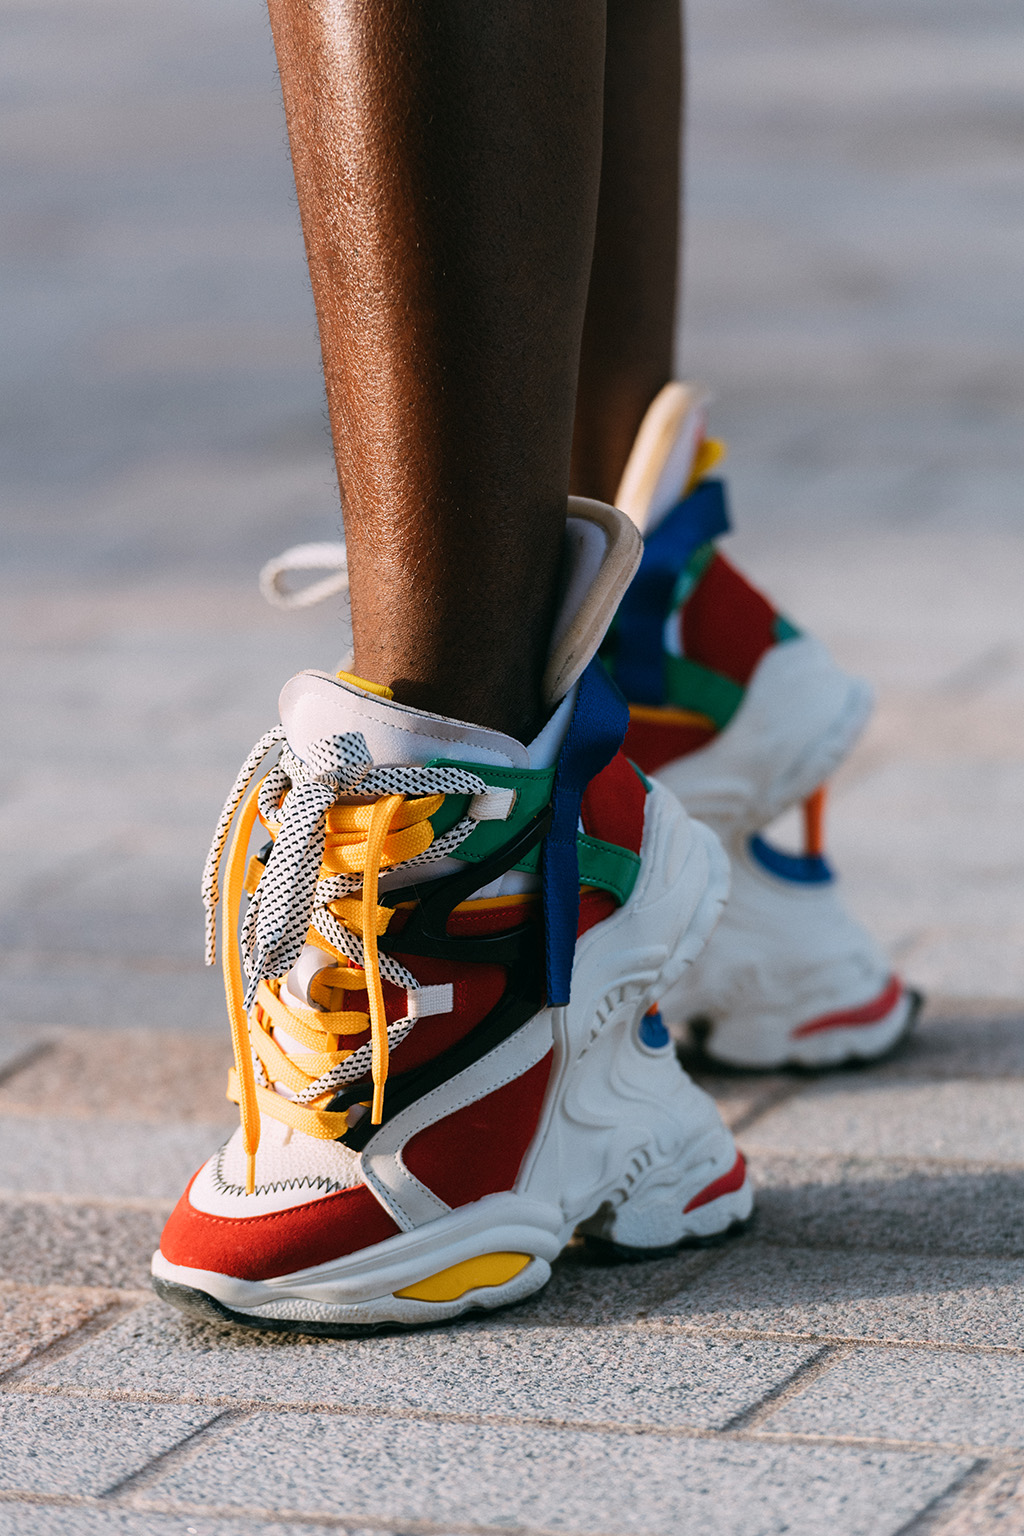 Best Street Style Shoes of 2019: Photos